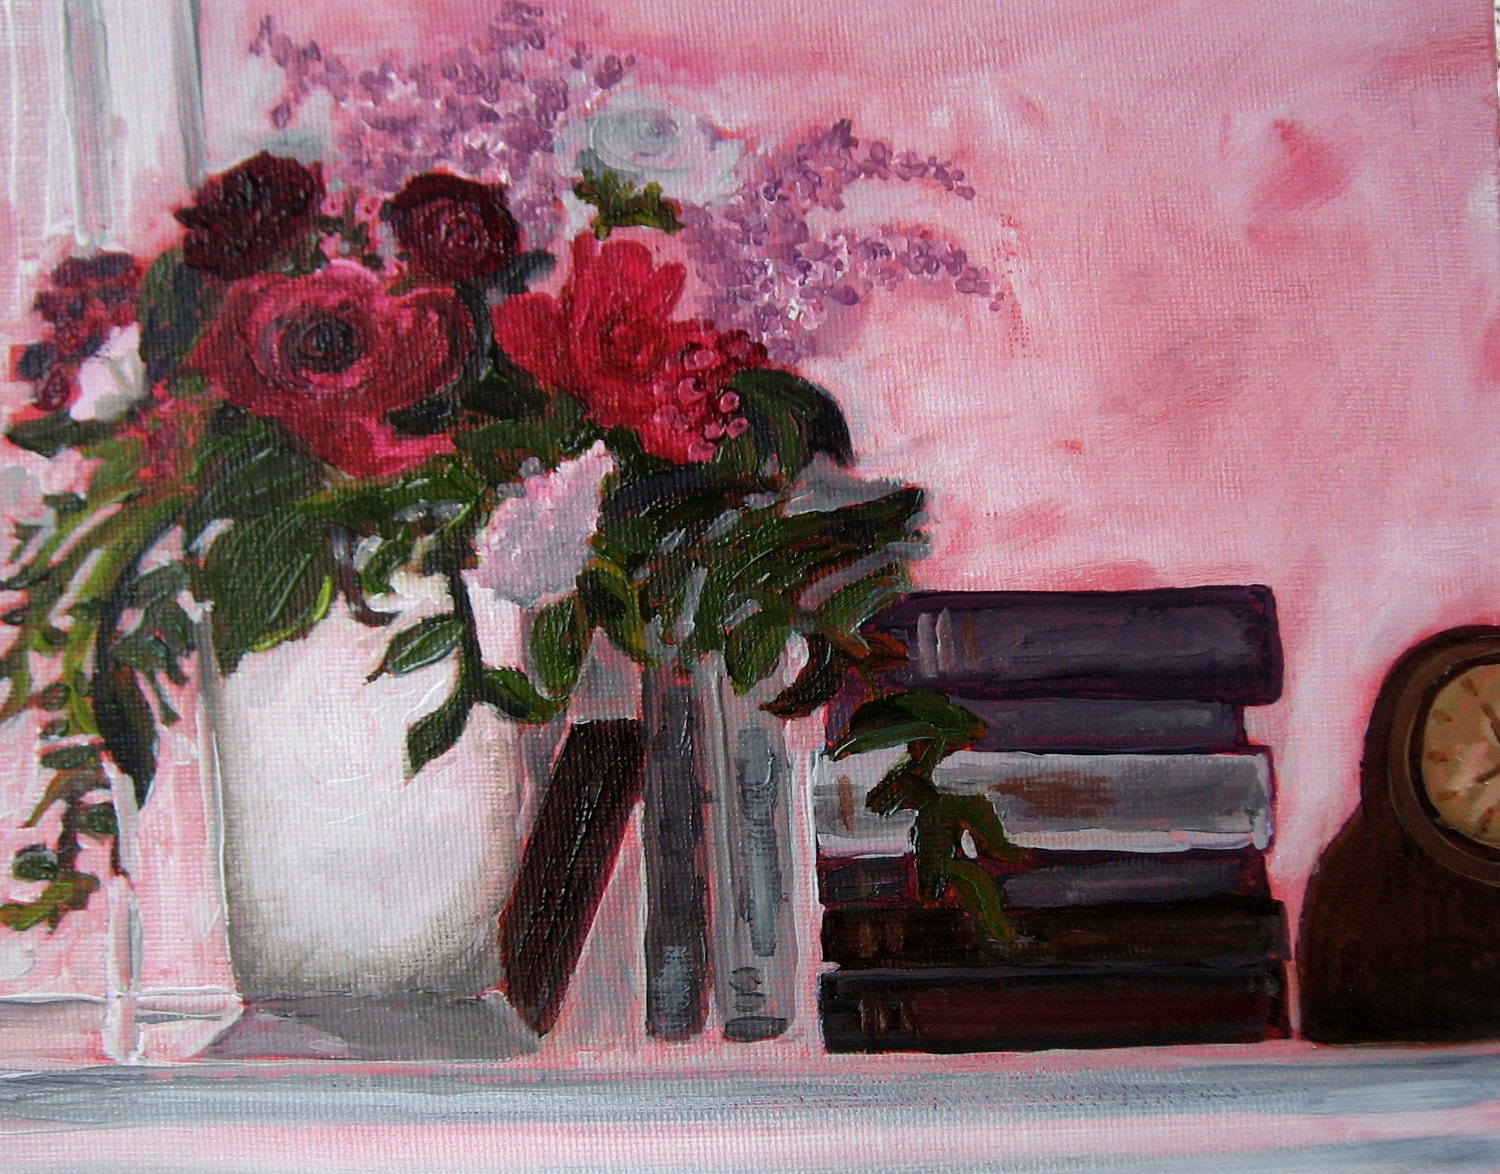 Roses and Books, oil painting, still life, original, flowers, clocks, books, painting, decor, handmade - maureencarrigan